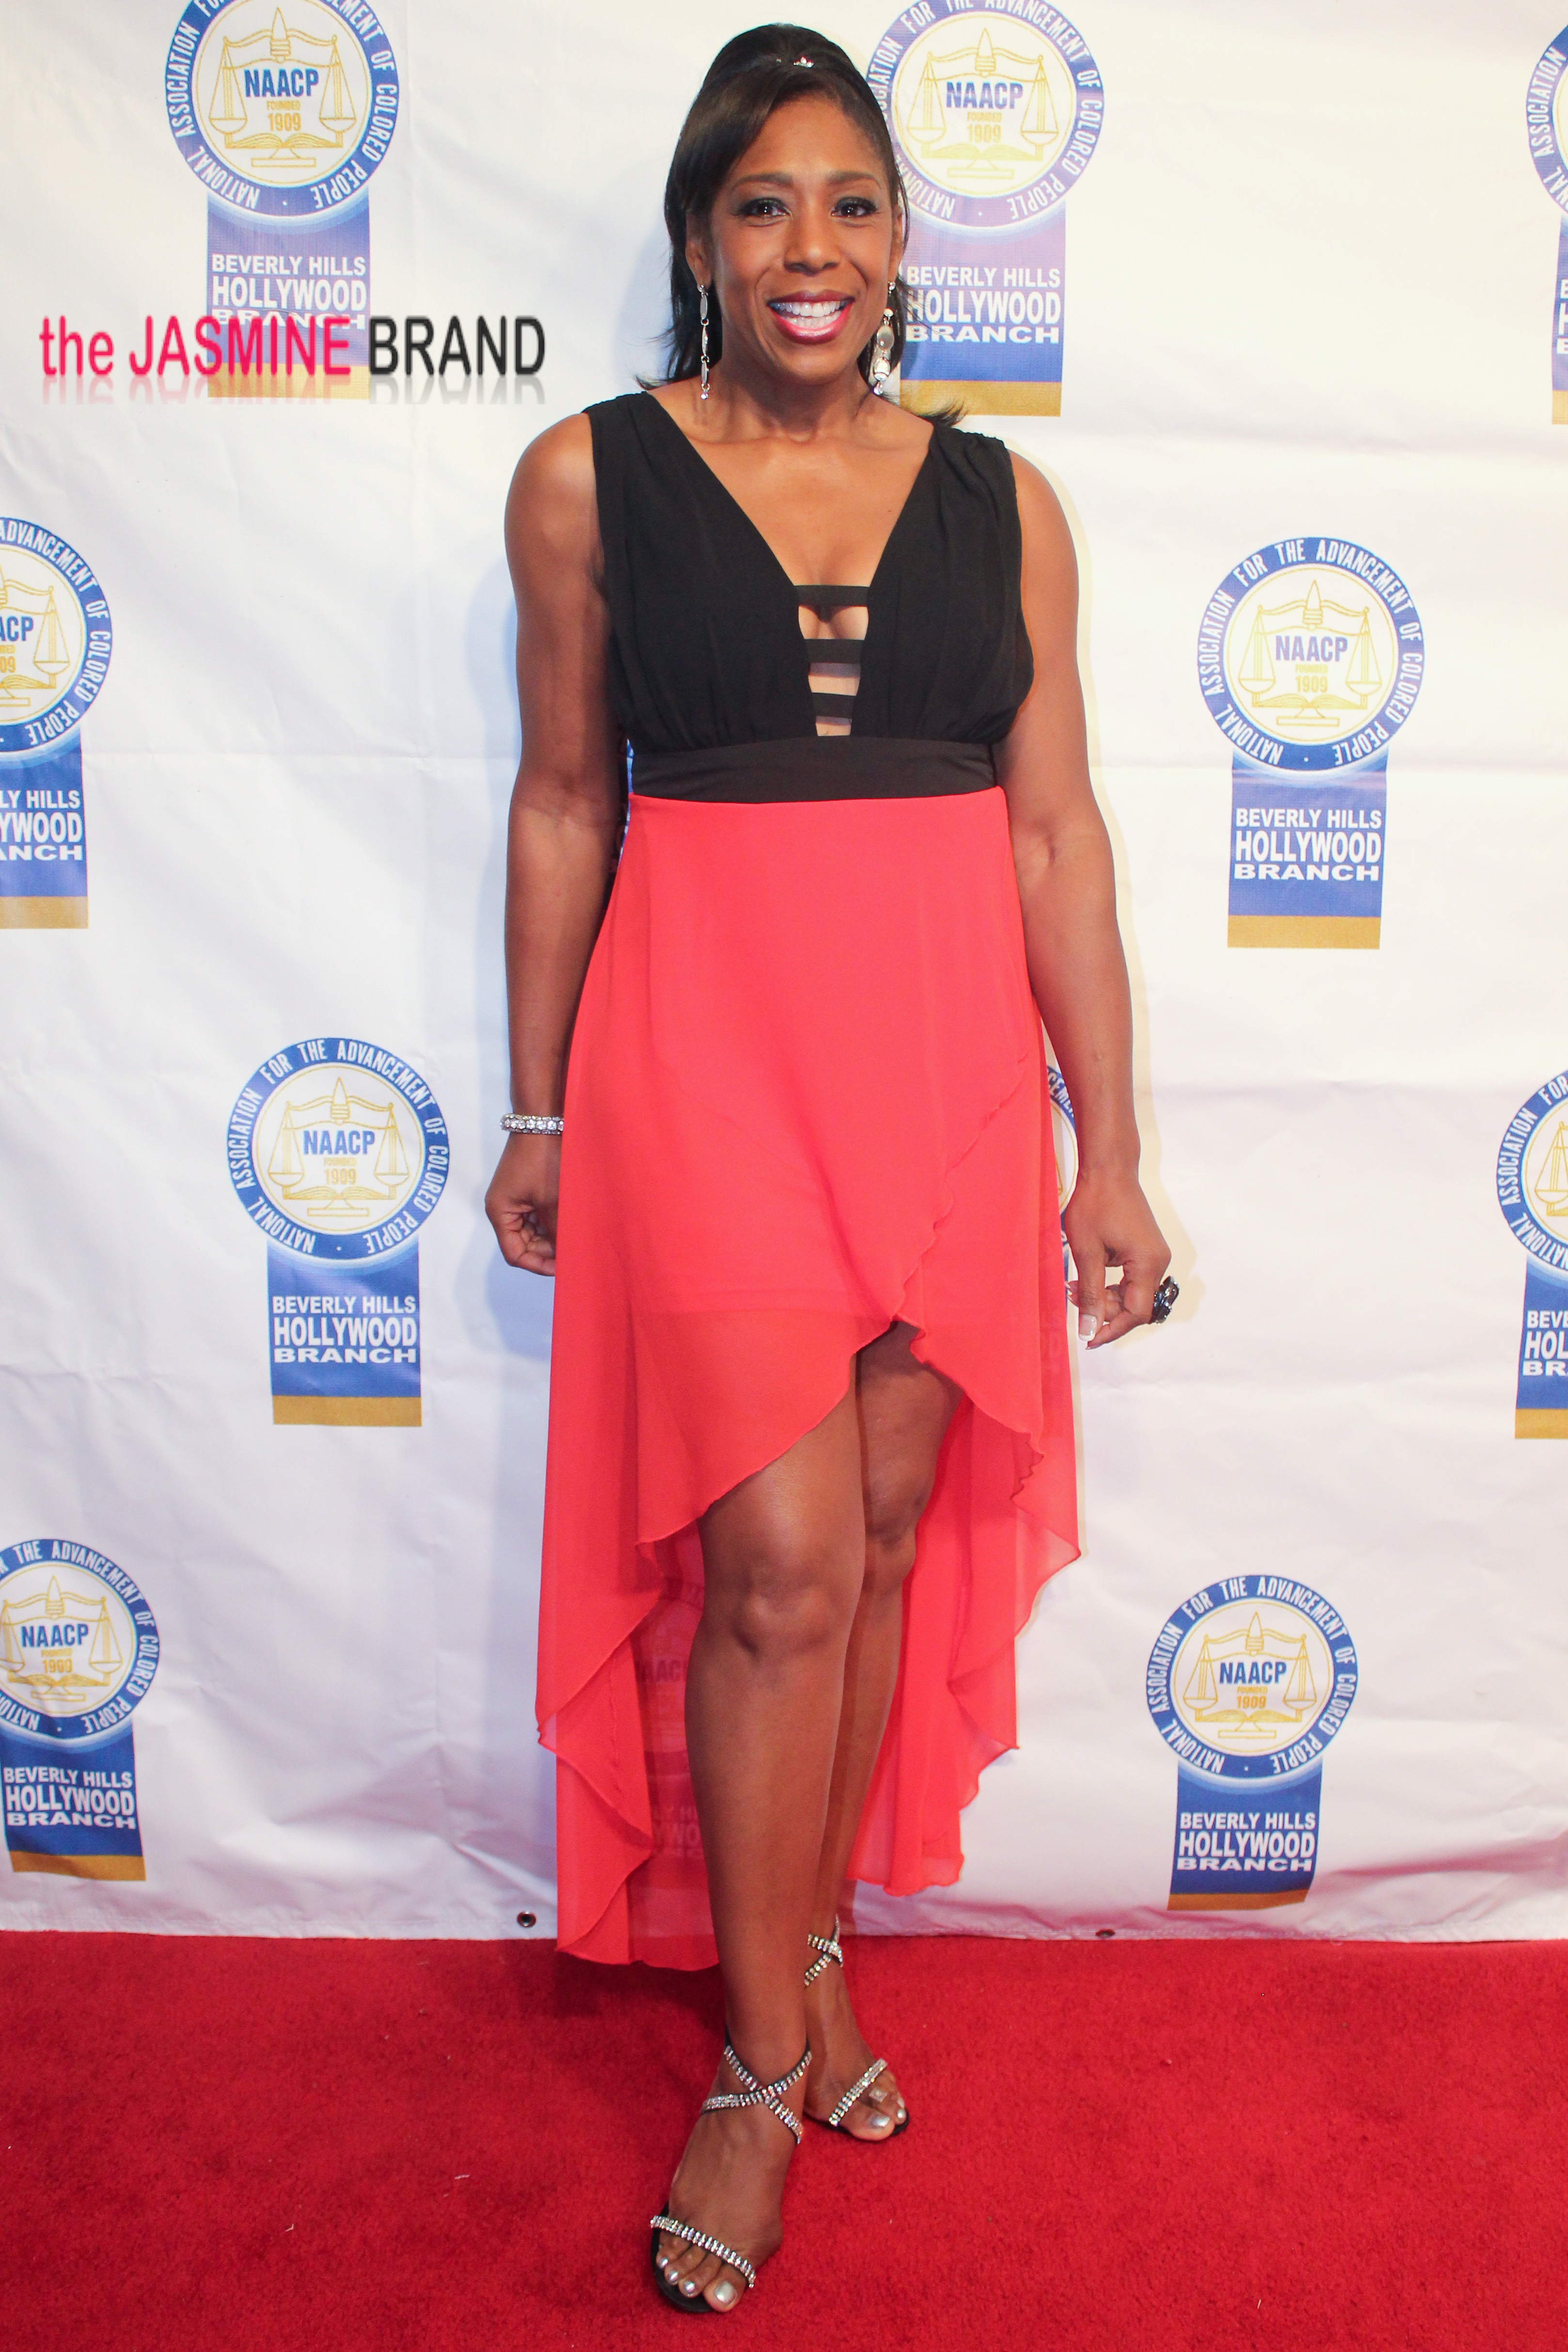 dawn lewis-naacp theater awards 2013-the jasmine brand